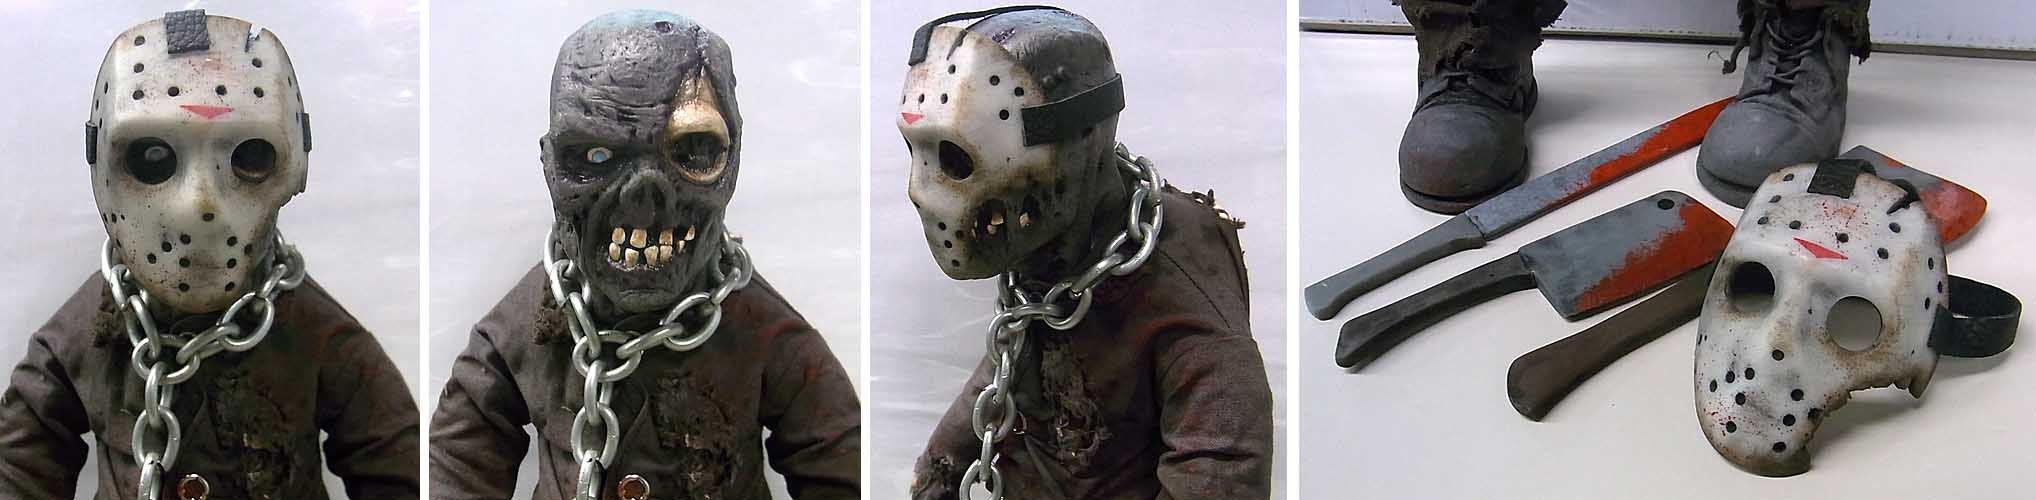 個人ハンドメイド品 MODERN HORROR CUSTOM DOLL JASON VOORHEES [A]